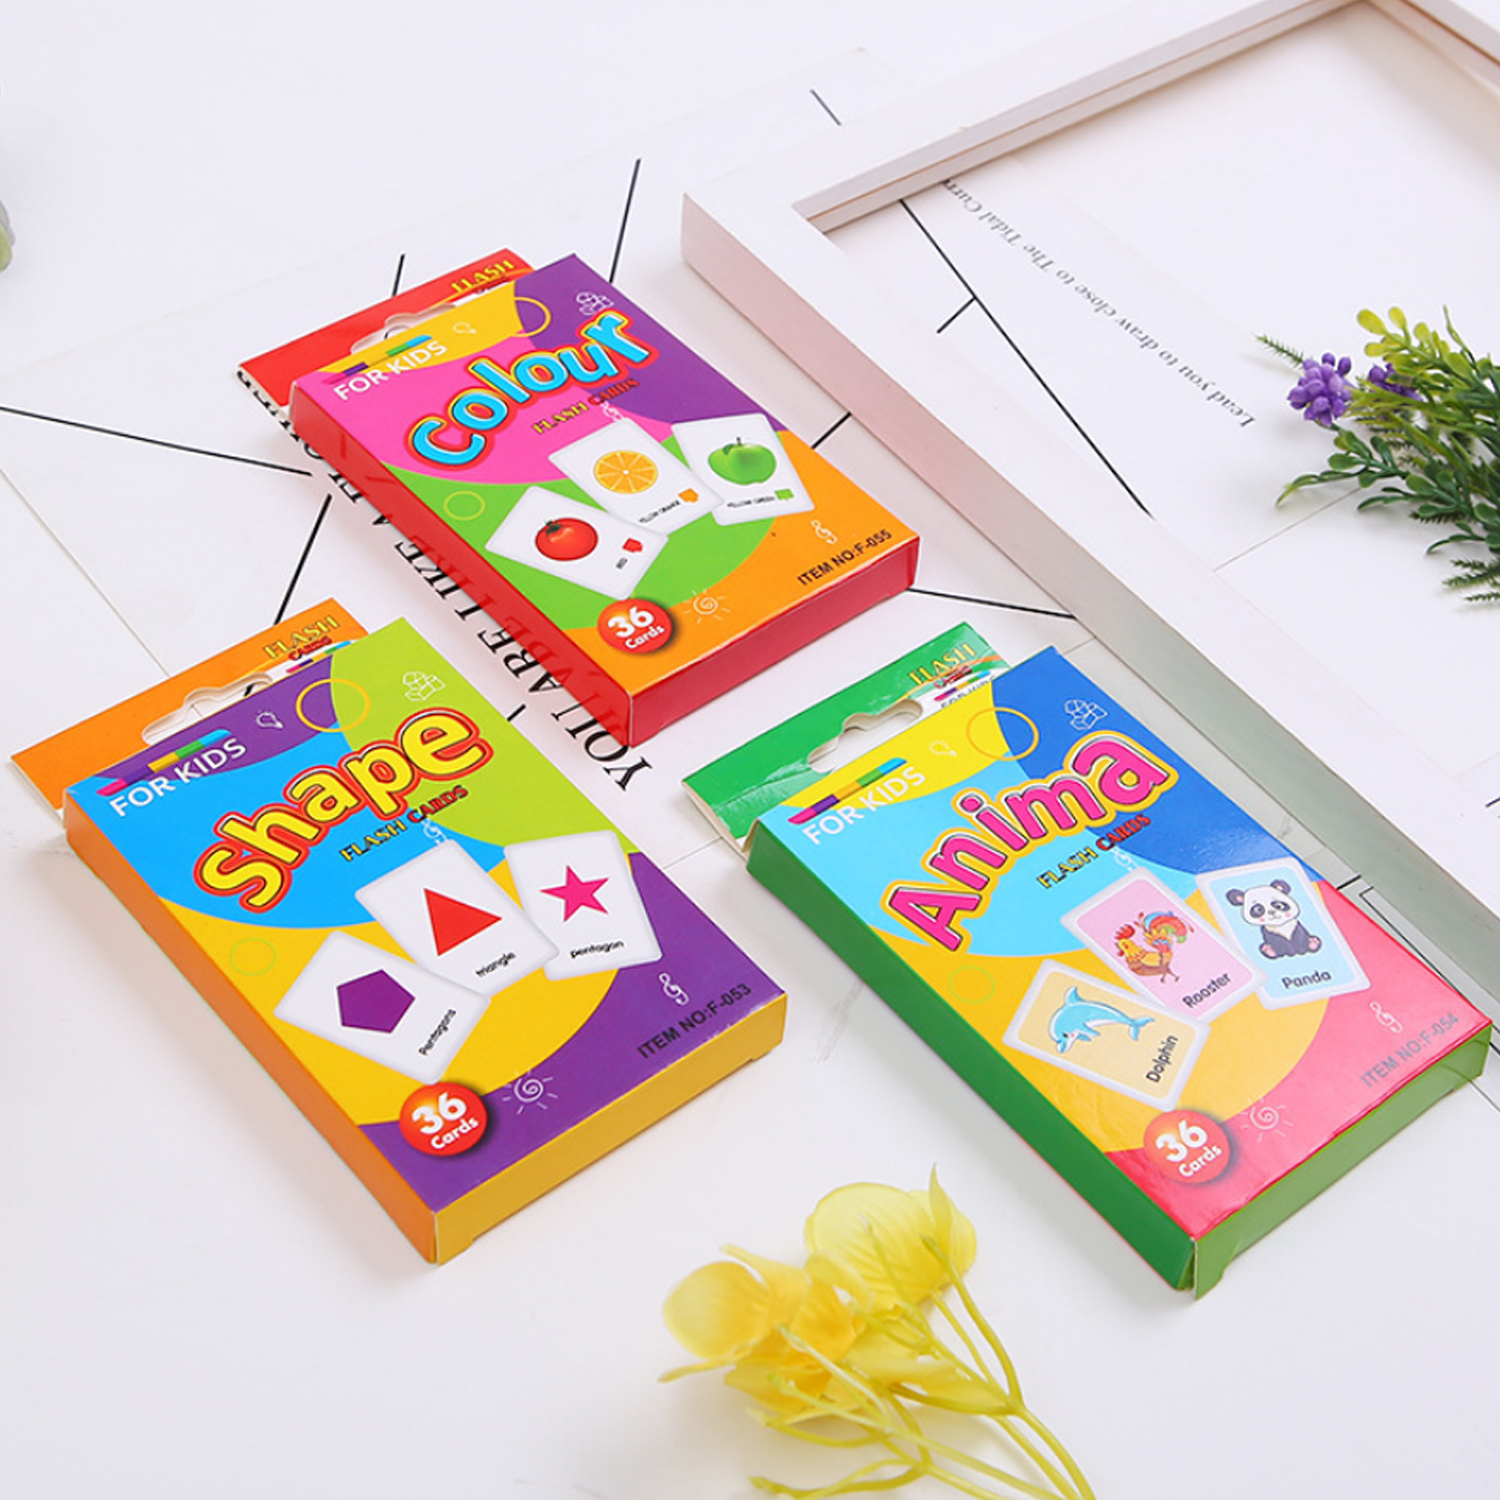 36PCS Funny Flash Cards Cognition Puzzle Early Education Learning Toys For Toddler Kids Children Birthday Christmas Gifts